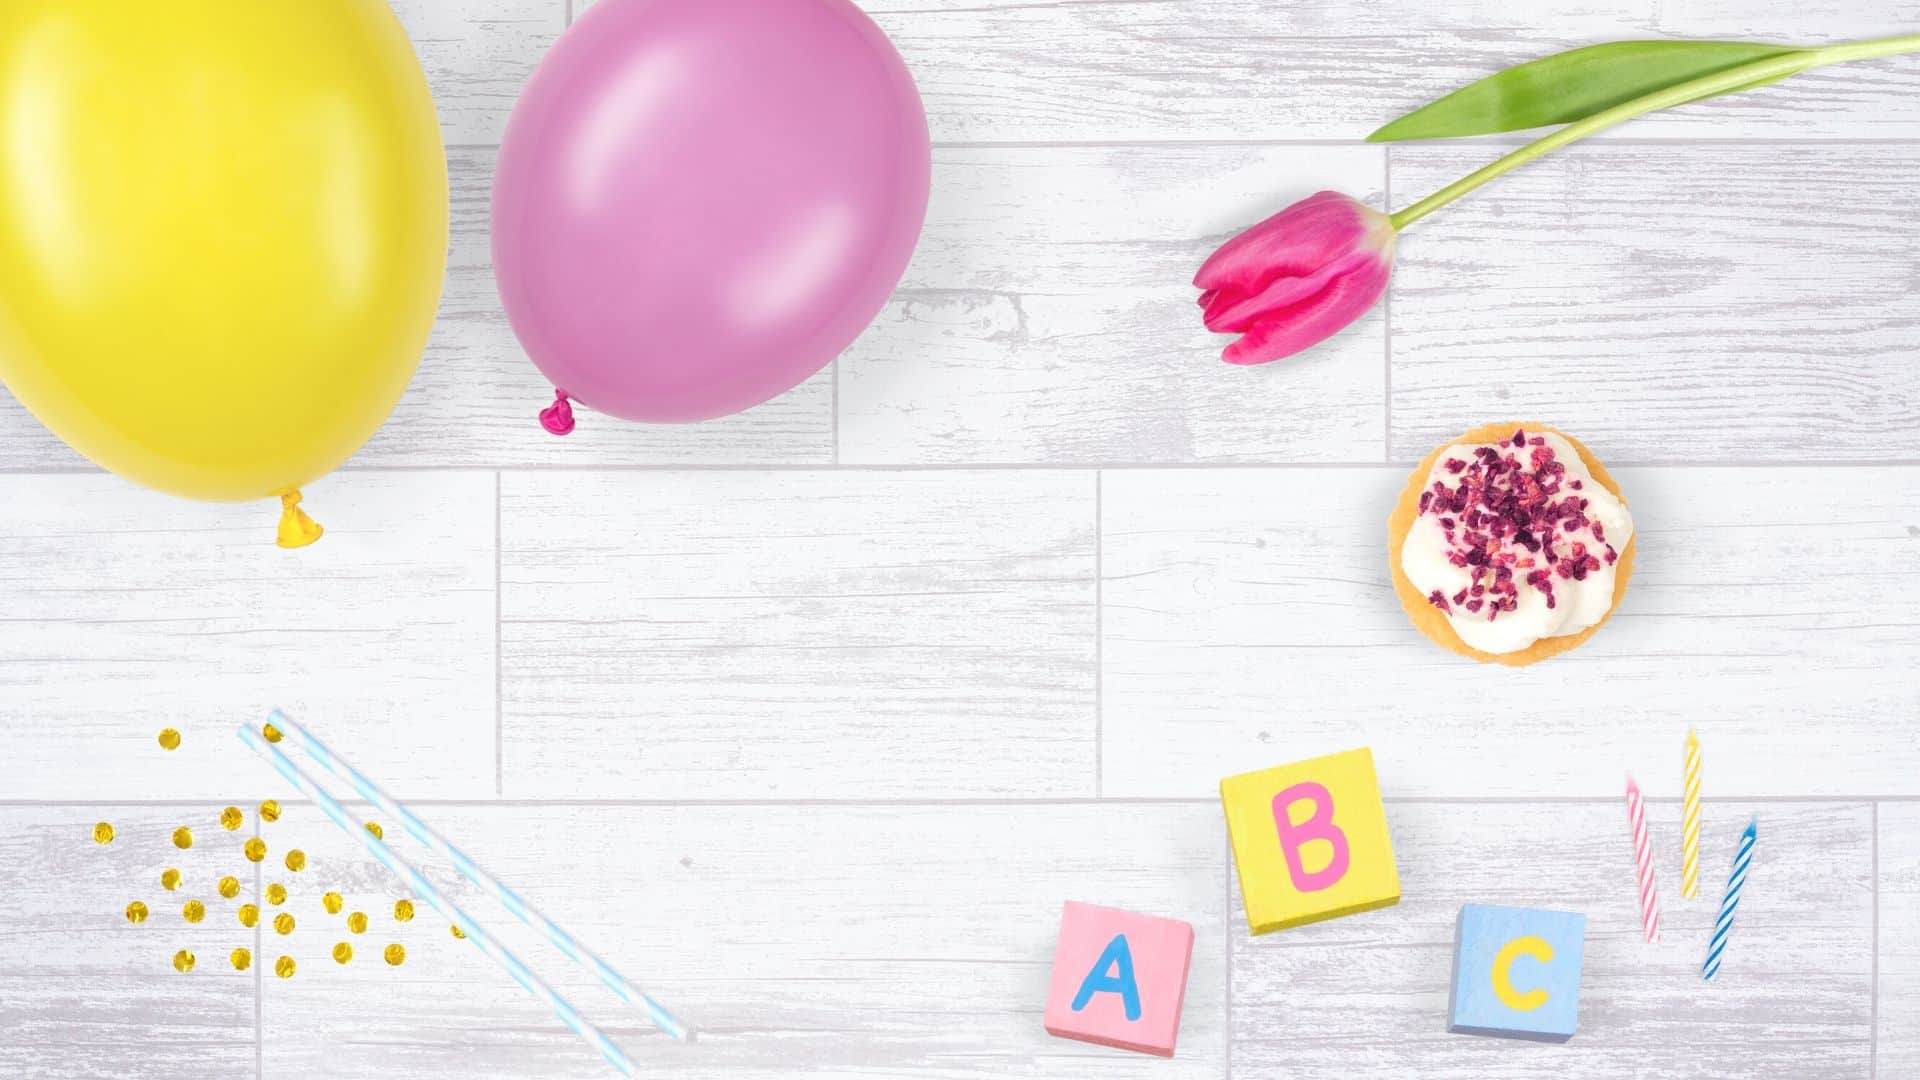 pink baby flatlay example with wooden board and kids props